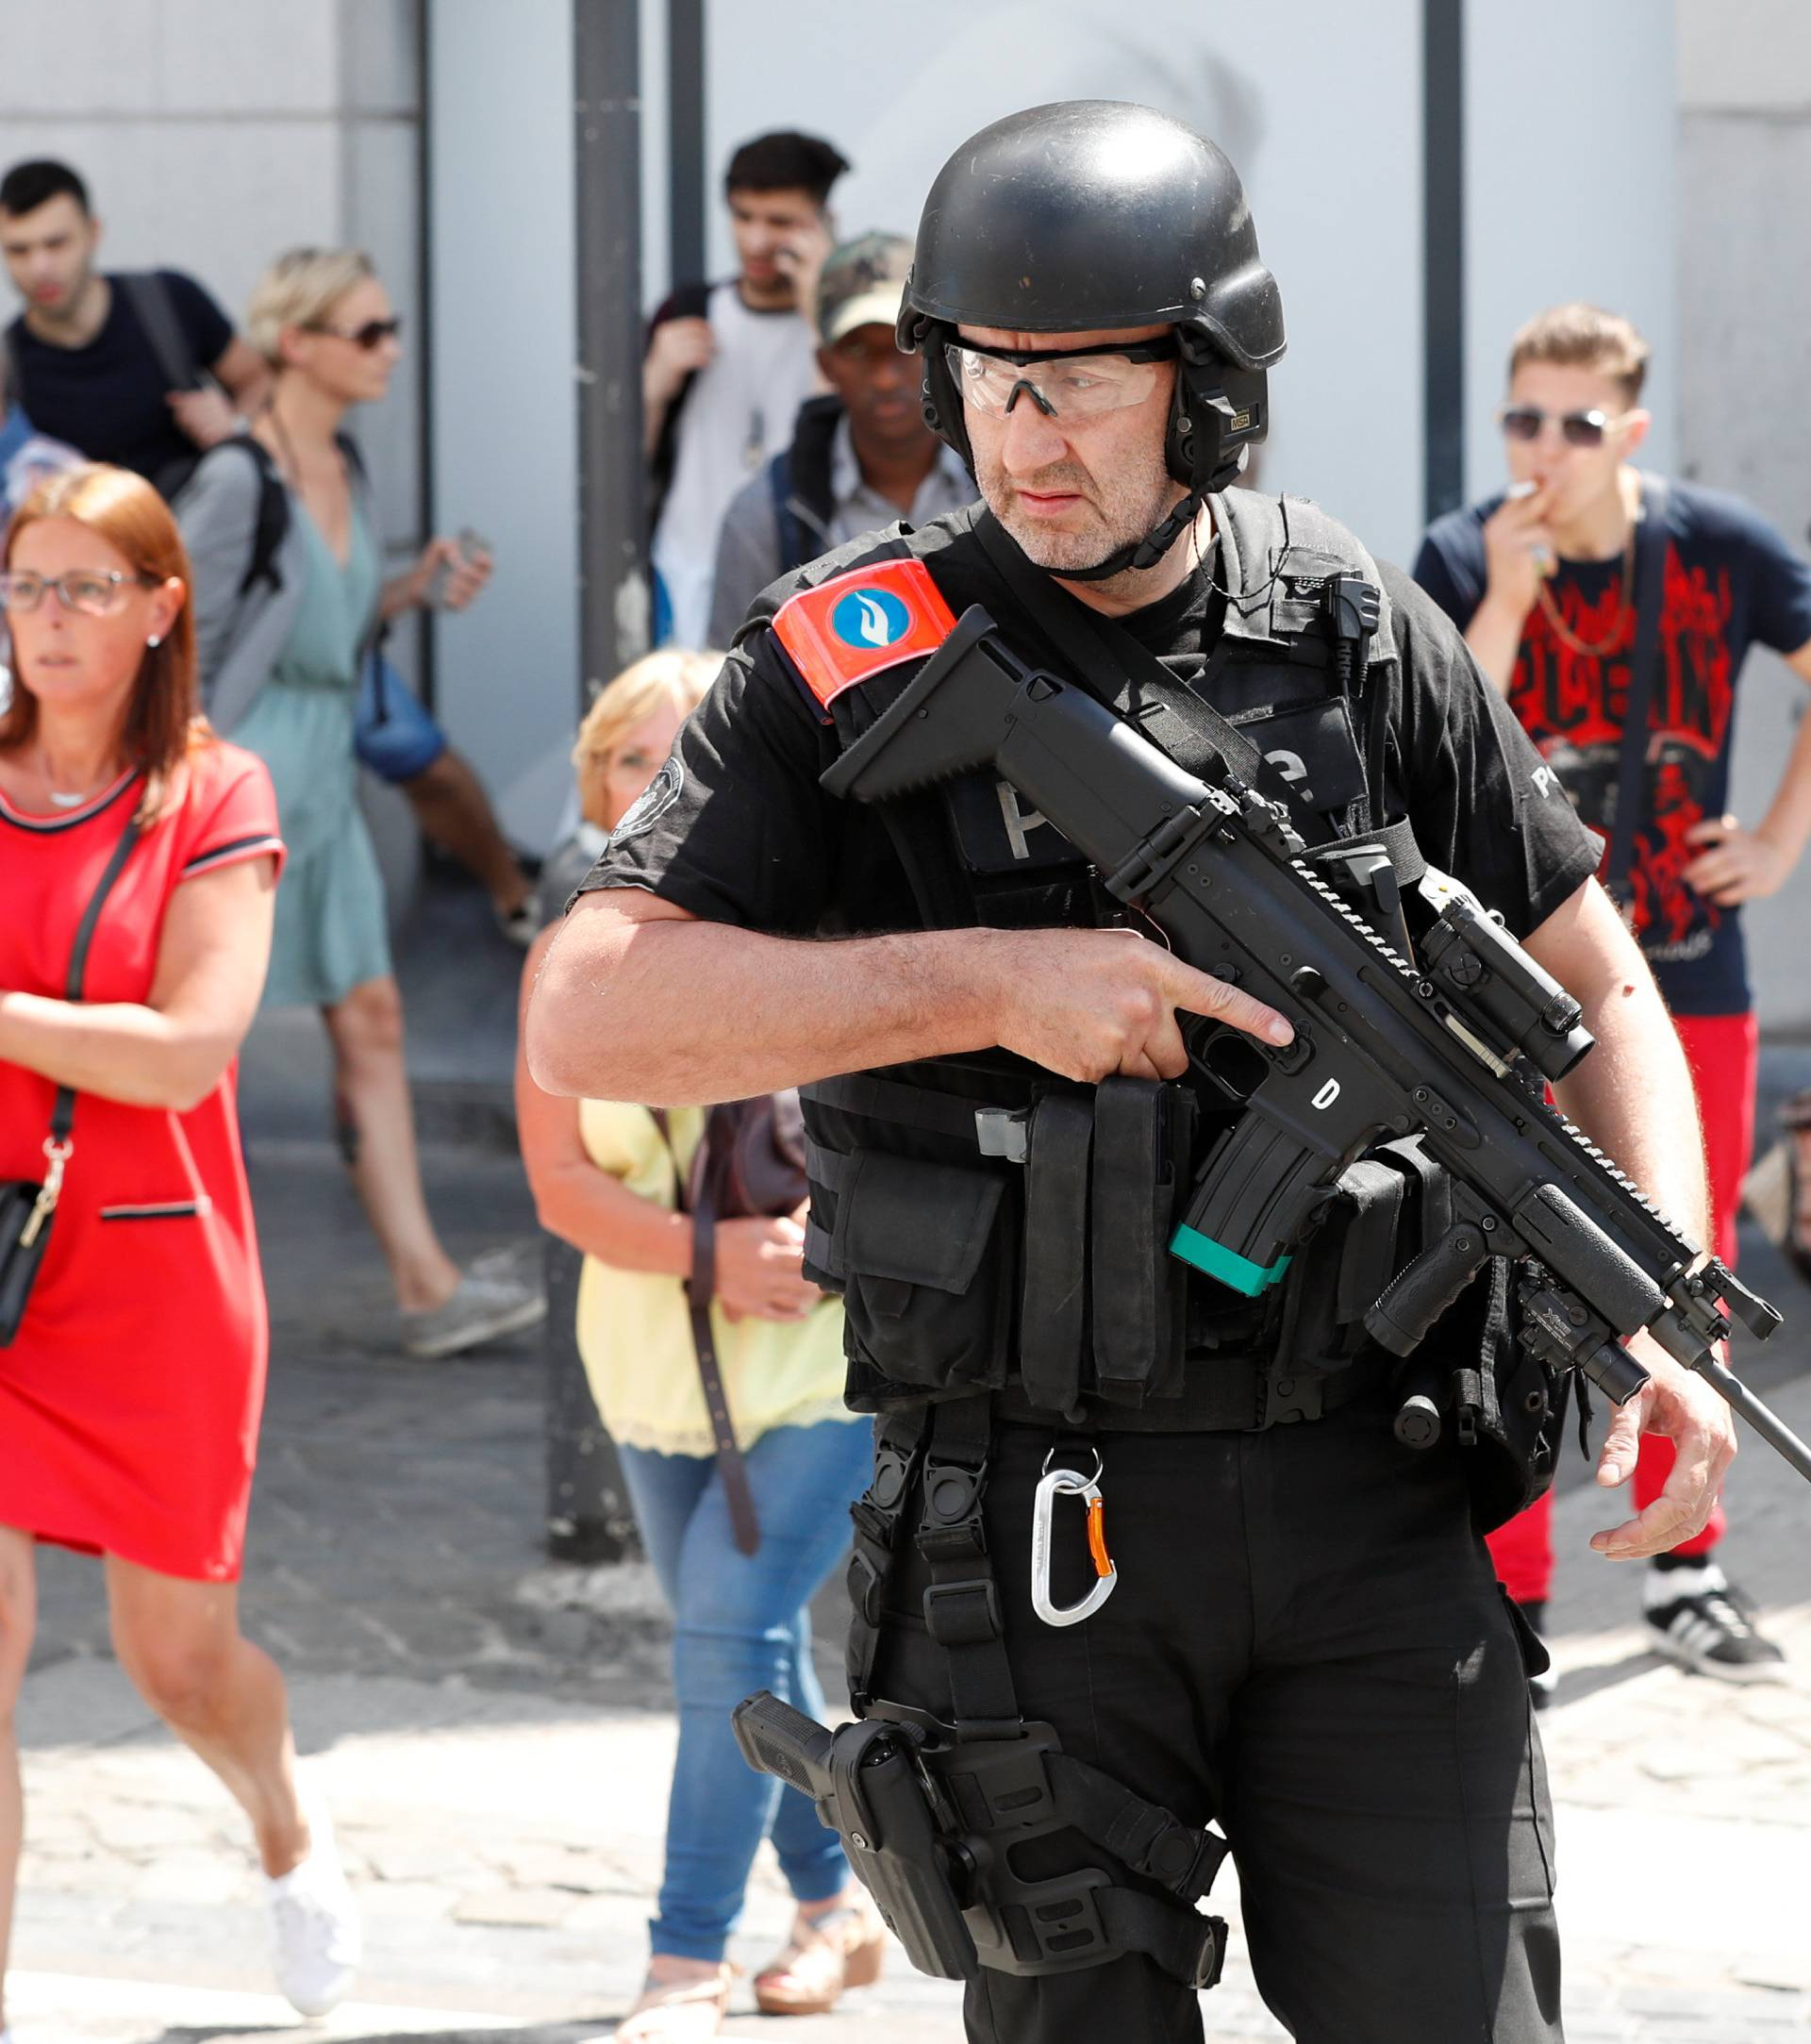 A member of the special police forces gestures in Liege